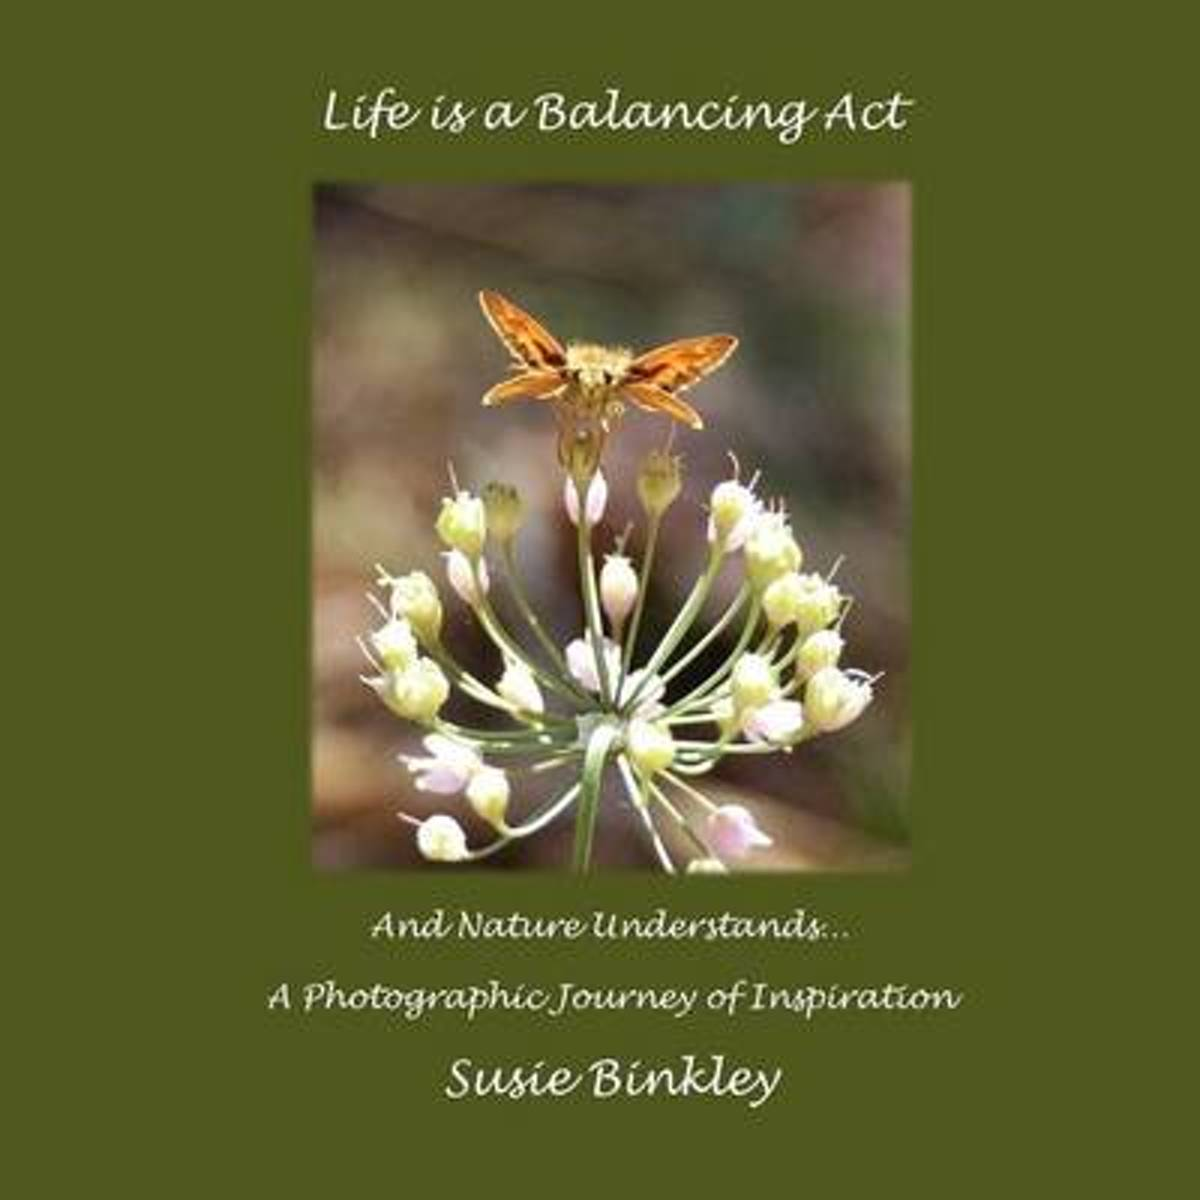 Life Is a Balancing ACT and Nature Understands...